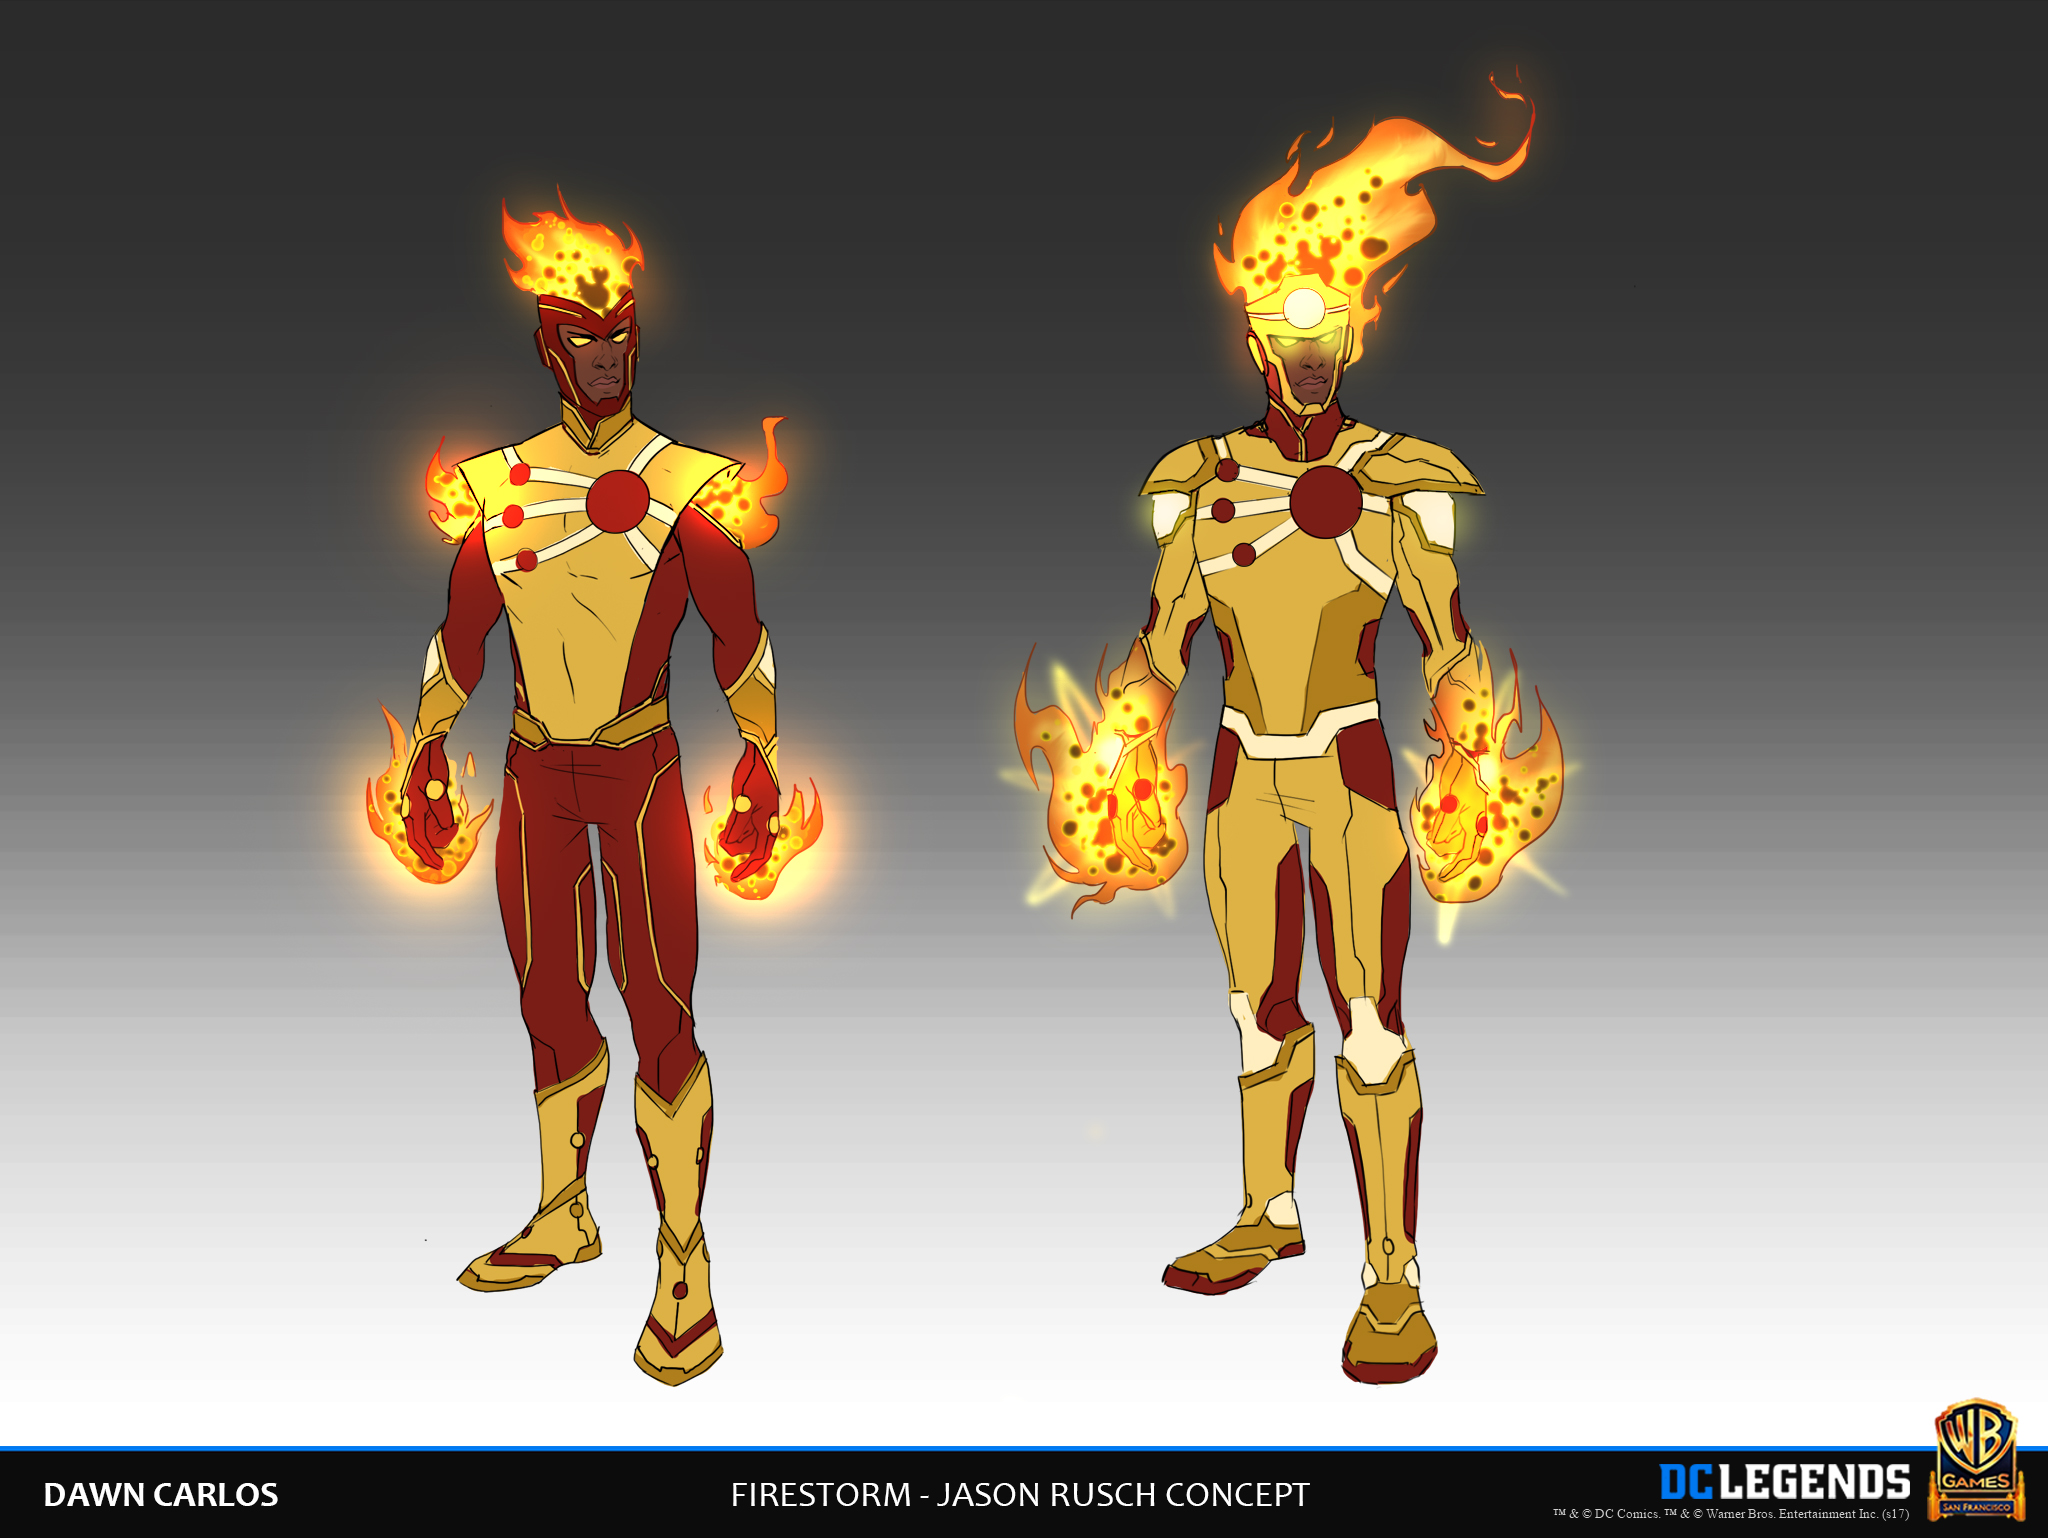 dcLegends_DawnCarlos_submissions_characterConcept_firestorm.jpg